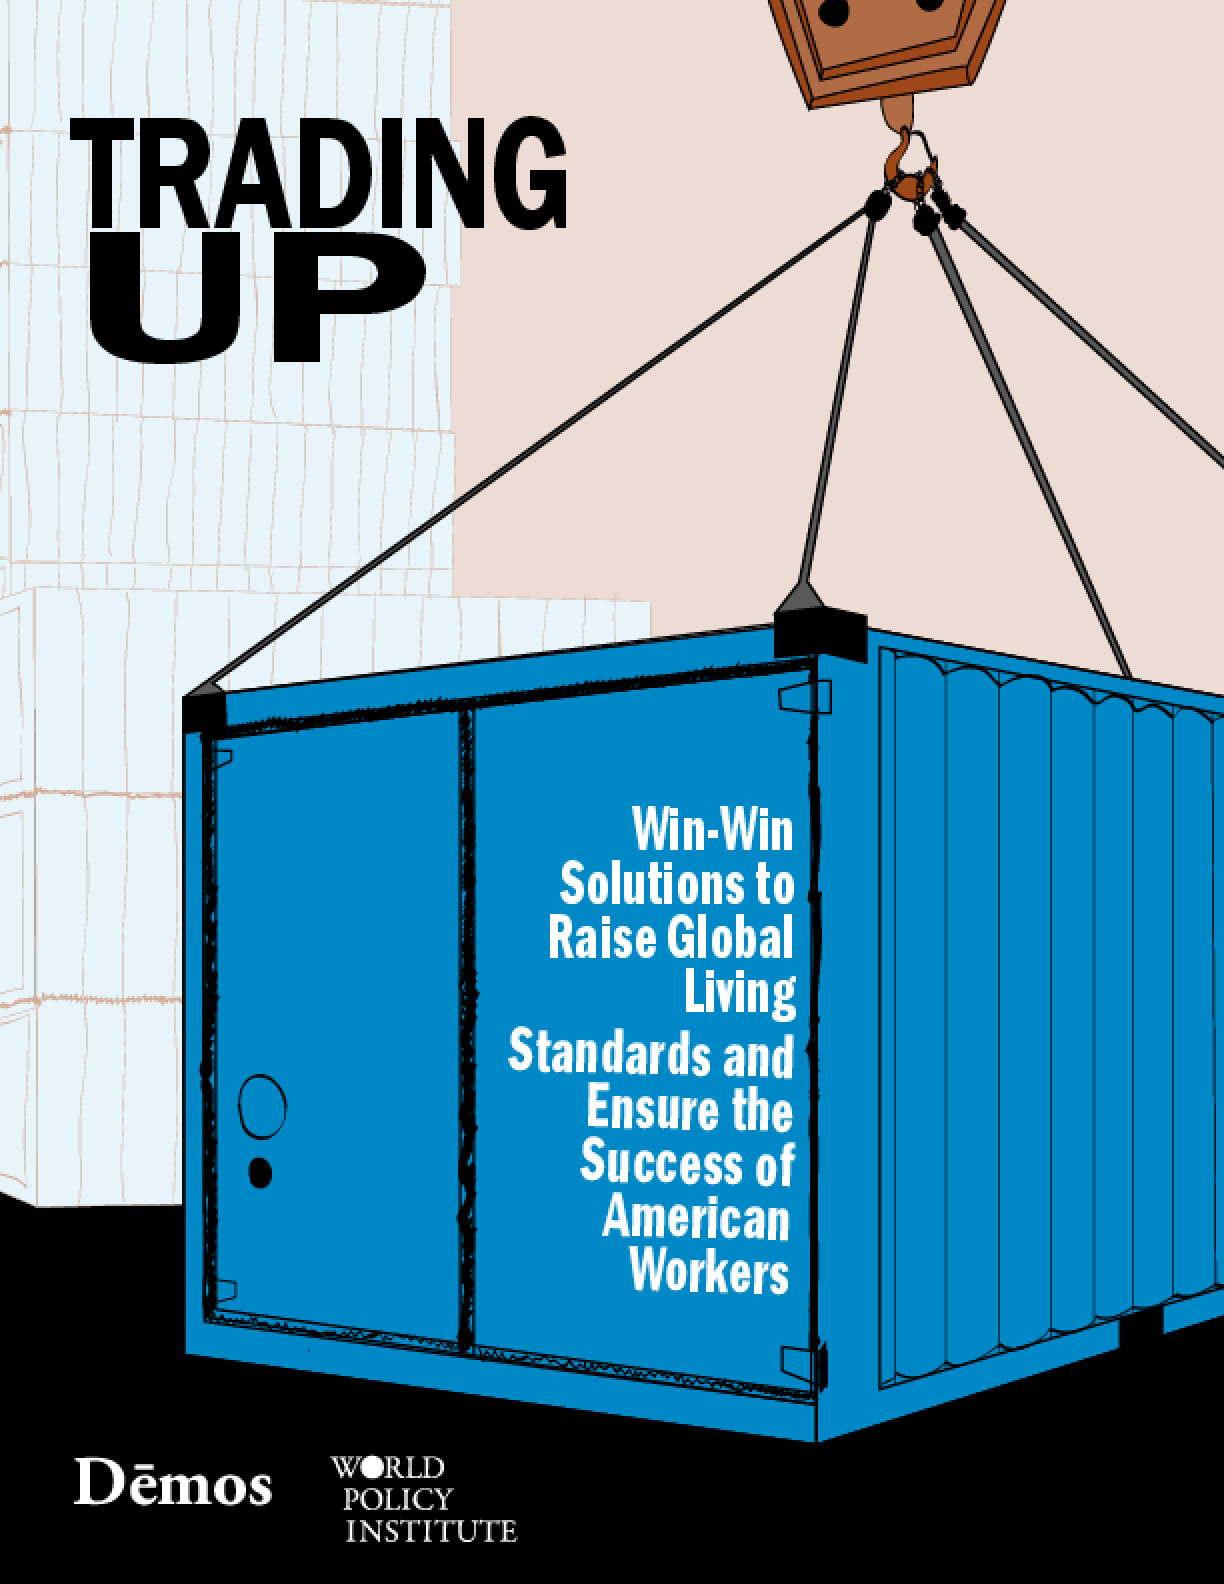 Trading Up: Win-Win Solutions to Raise Global Living Standards and Ensure the Success of American Workers